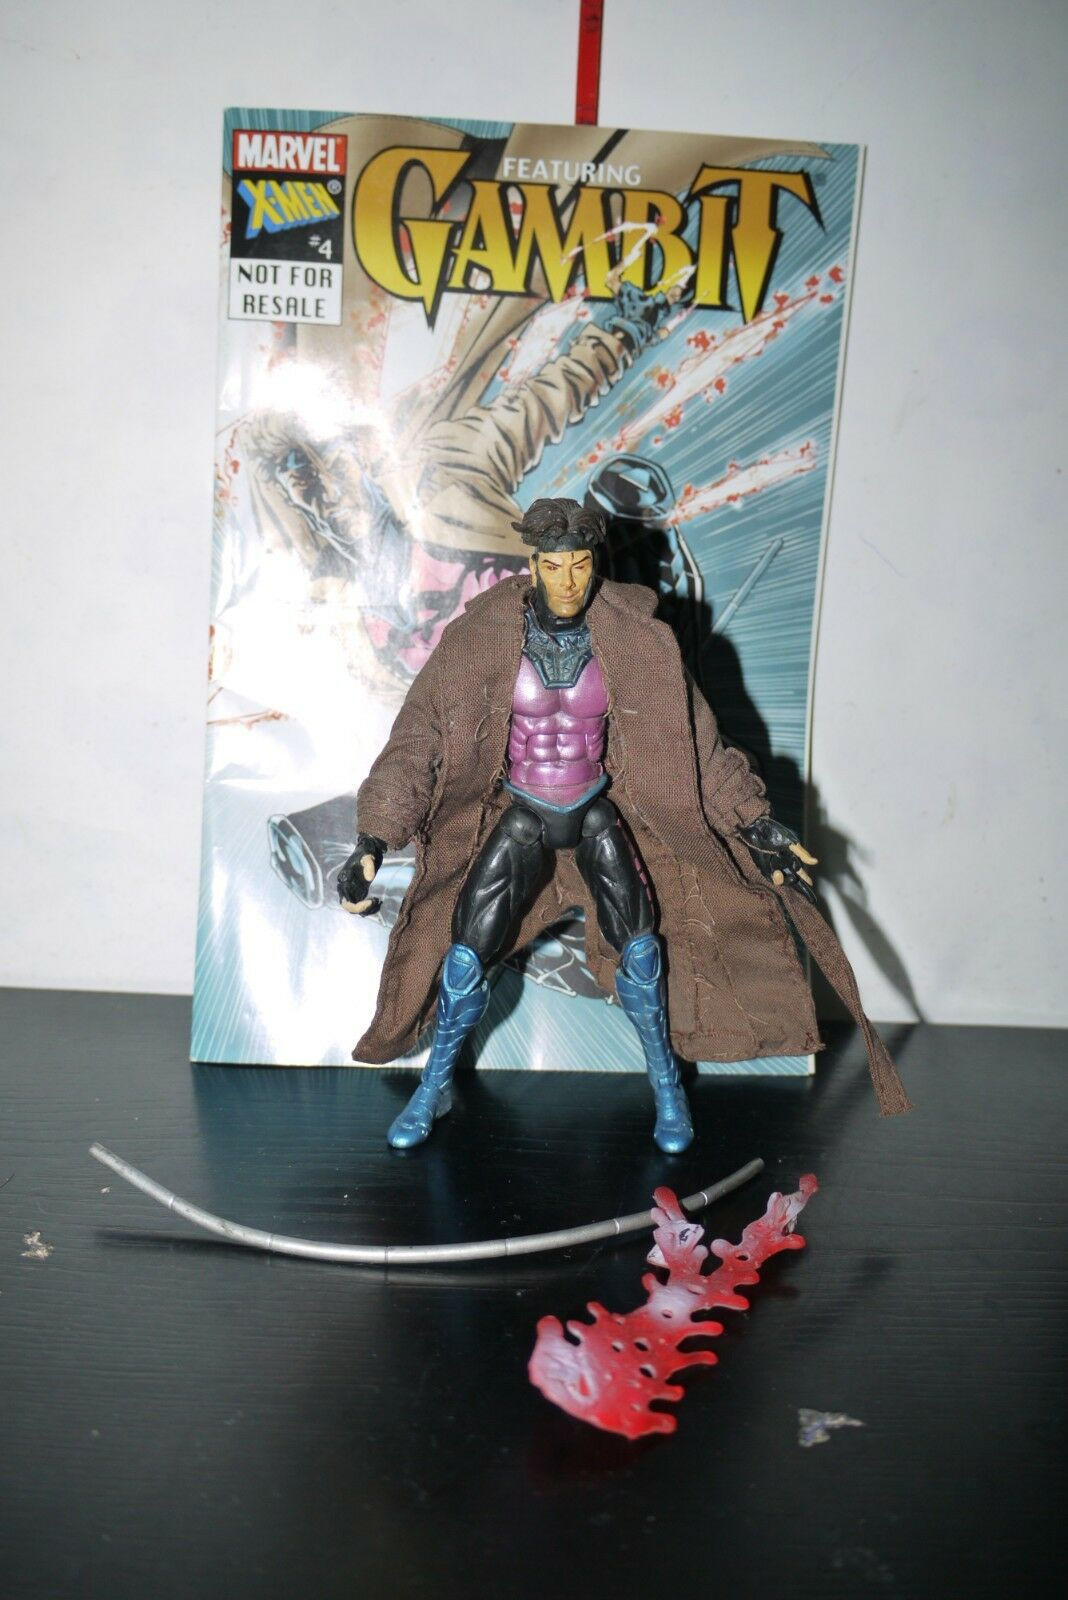 TOYBIZ MARVEL LEGENDS SERIES IV GAMBIT FIGURE